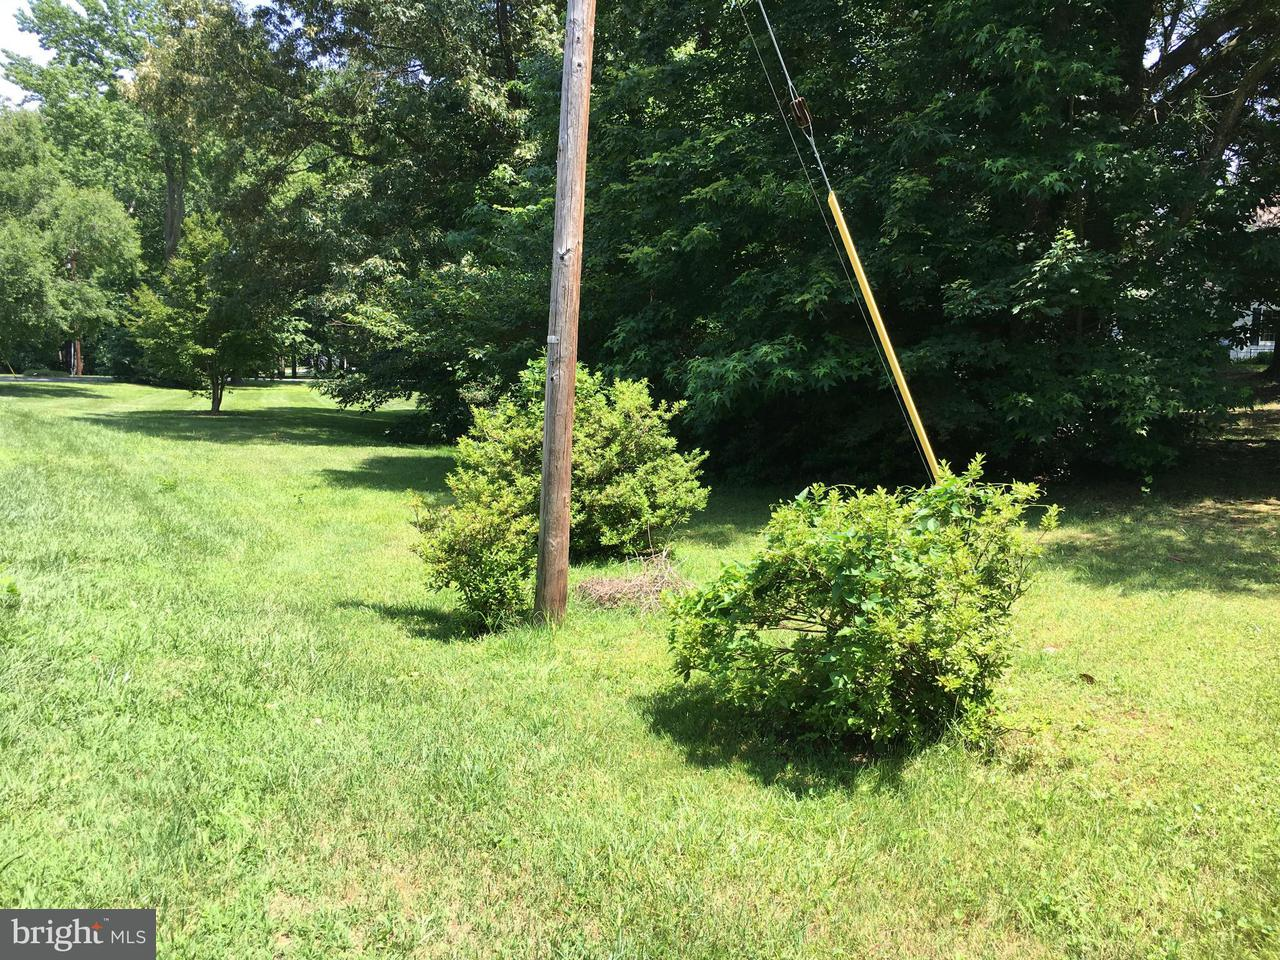 Additional photo for property listing at 599 Broadwater Way 599 Broadwater Way Gibson Island, Maryland 21056 United States